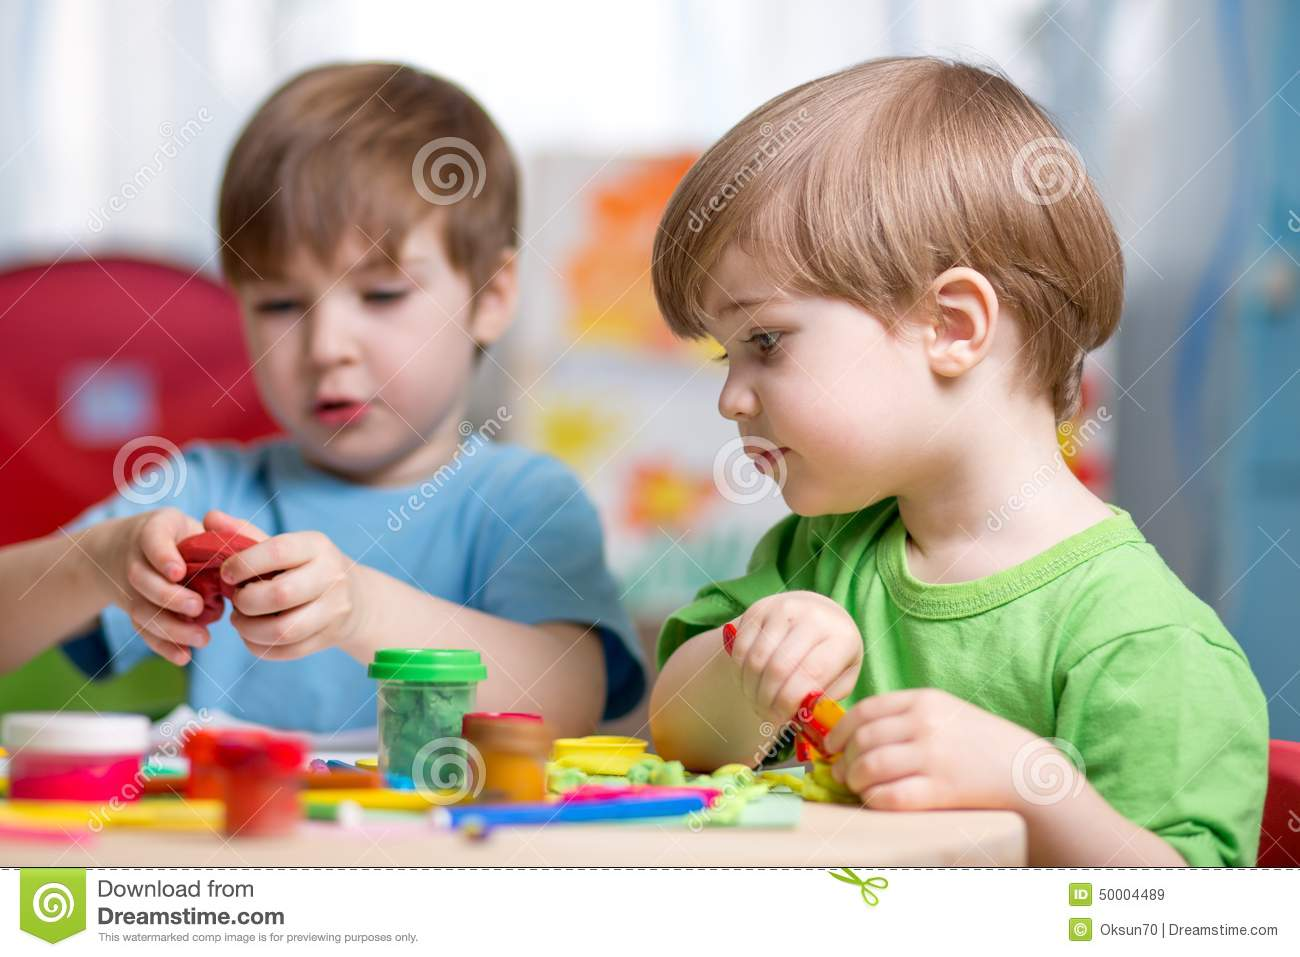 Kinder Garden: Kids With Play Clay At Home Stock Image